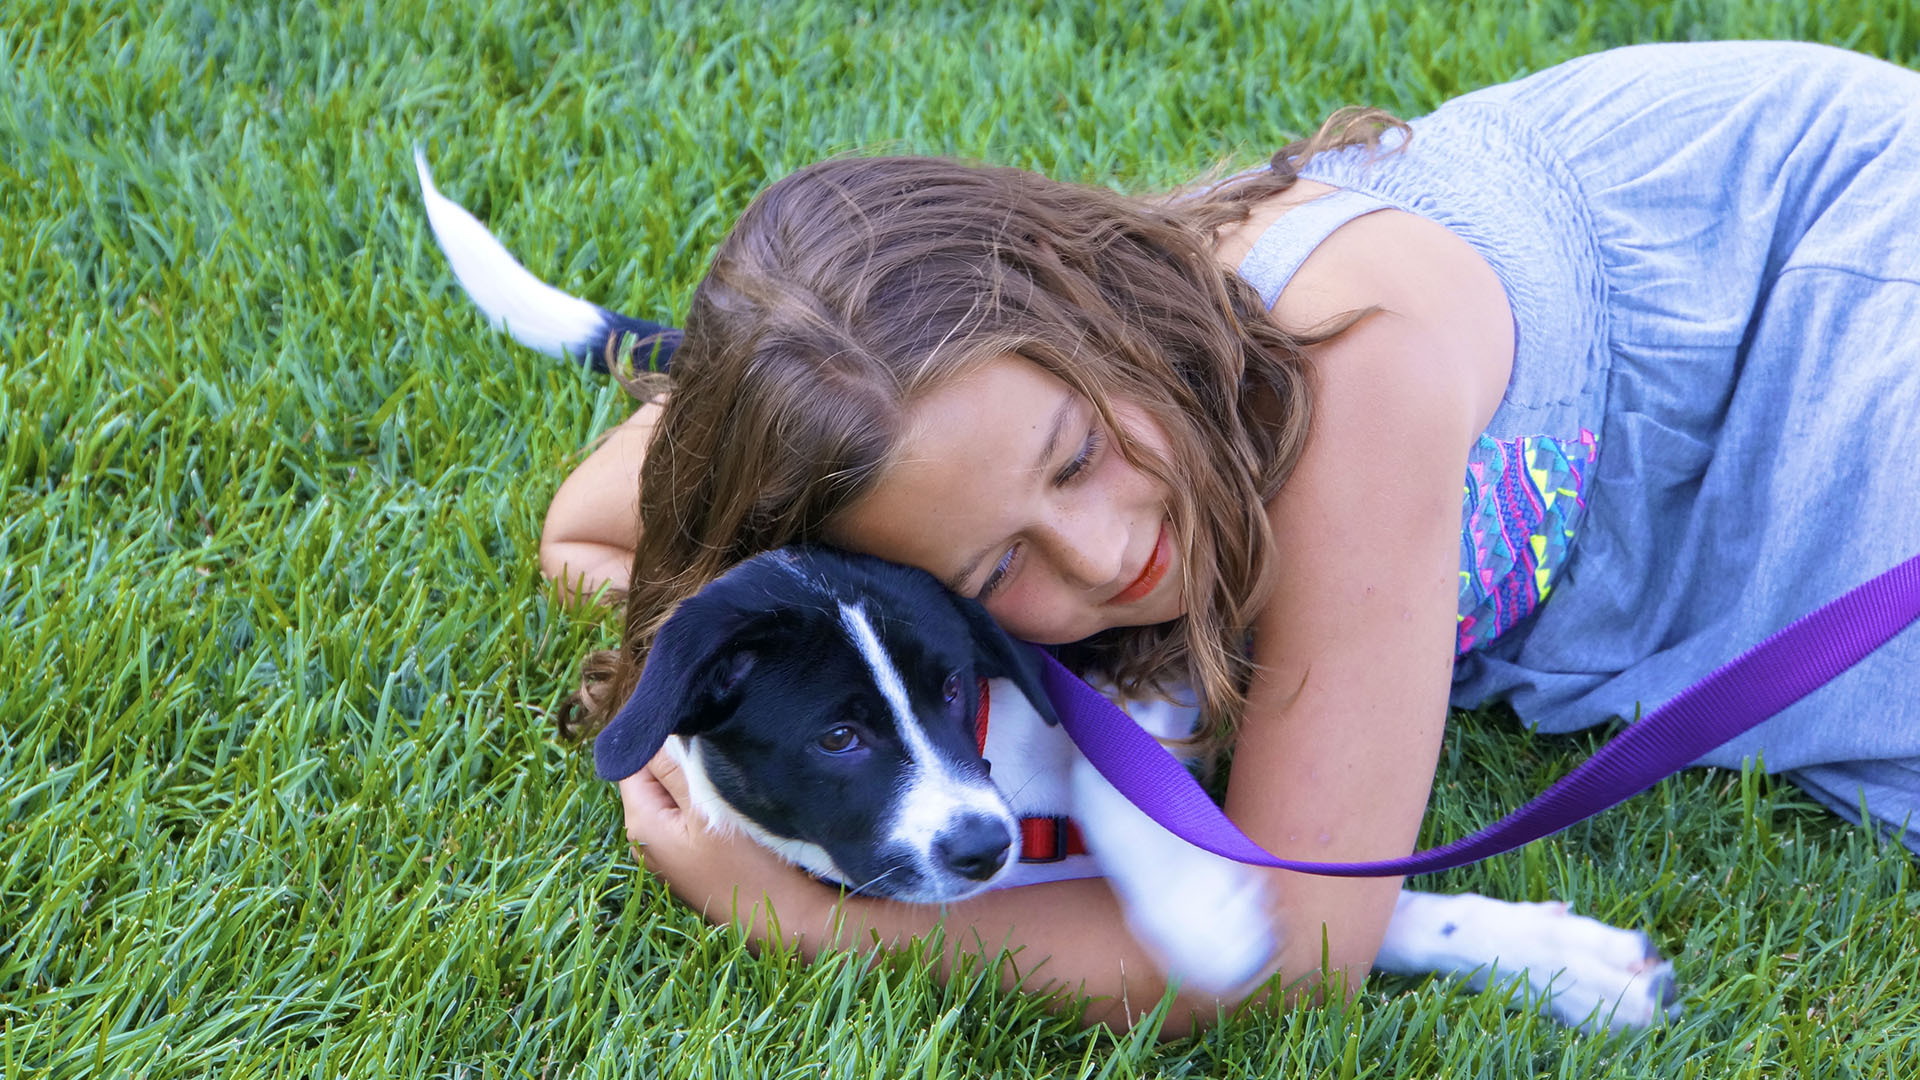 Little girl on grass w puppy 12